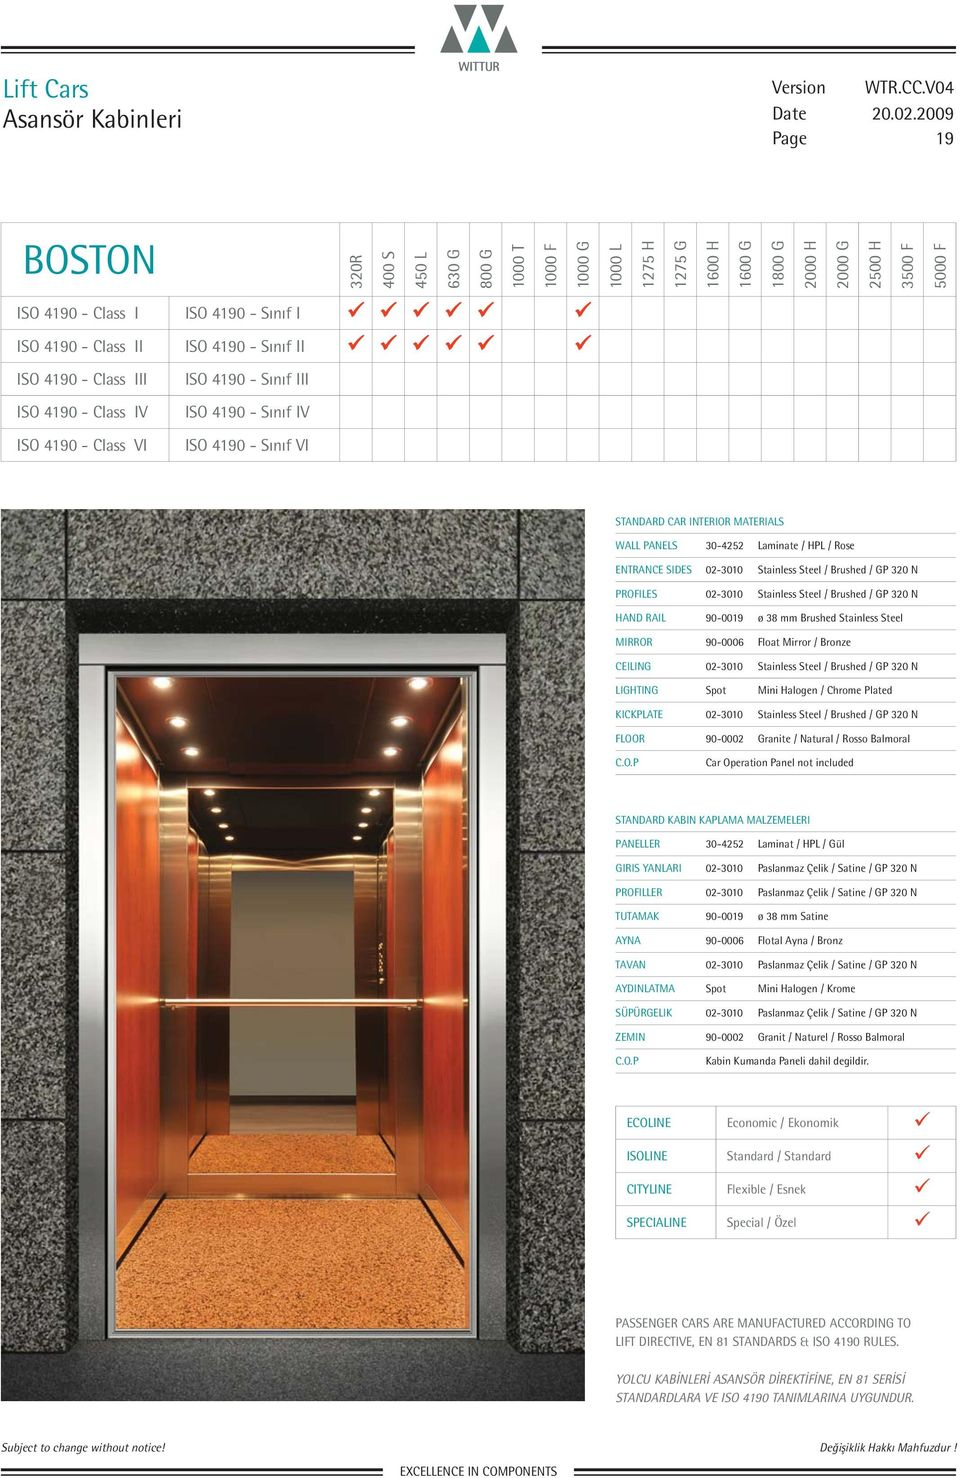 Bronze LIGHTING Spot Mini Halogen / Chrome Plated FLOOR 90-0002 Granite / Natural / Rosso Balmoral PANELLER 30-4252 Laminat